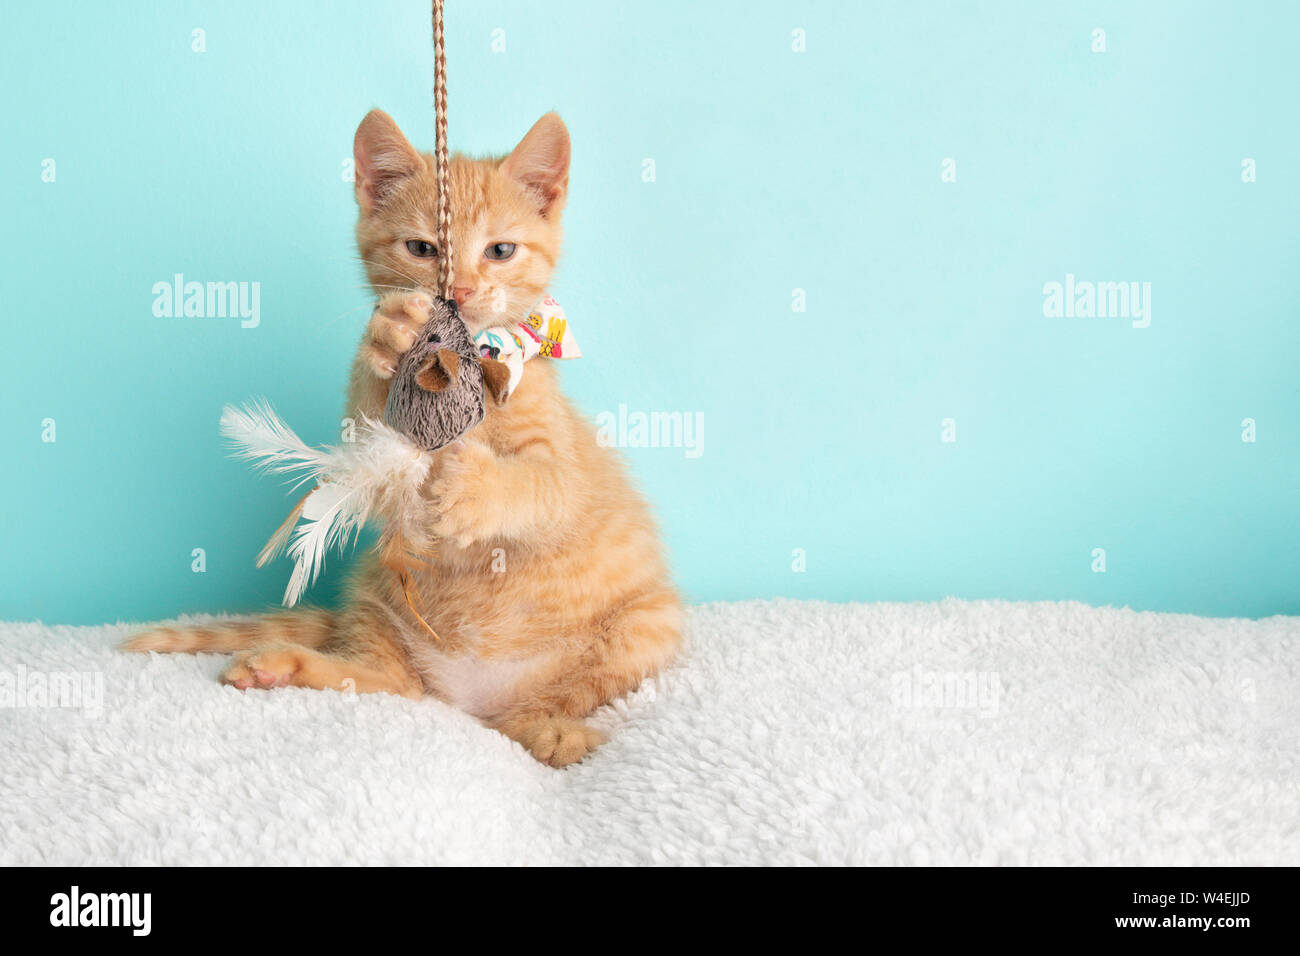 Cute Young Orange Tabby Cat Kitten Rescue Wearing White Flower Bow Tie Sitting Funny Playing with String and Mouse Toy on Blue Background Stock Photo